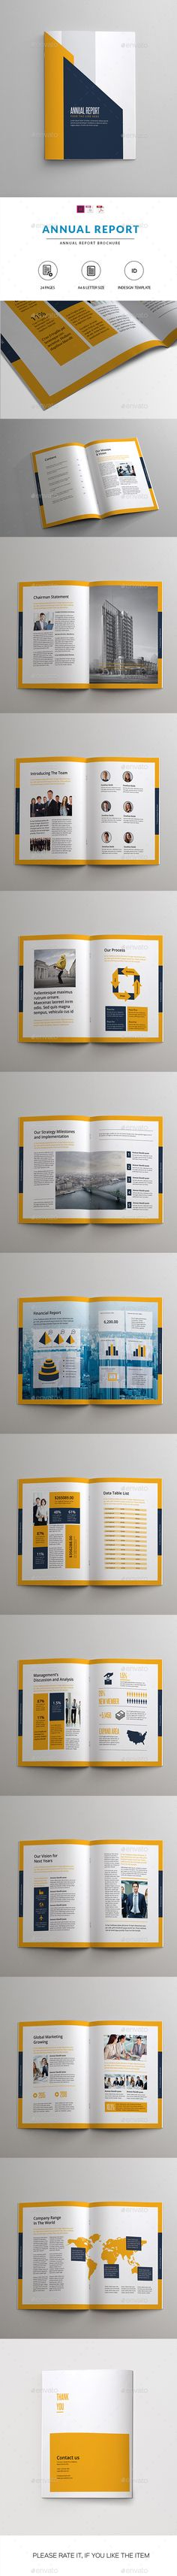 Annual Report Template InDesign INDD. Download here: https://graphicriver.net/item/annual-report/17089493?ref=ksioks